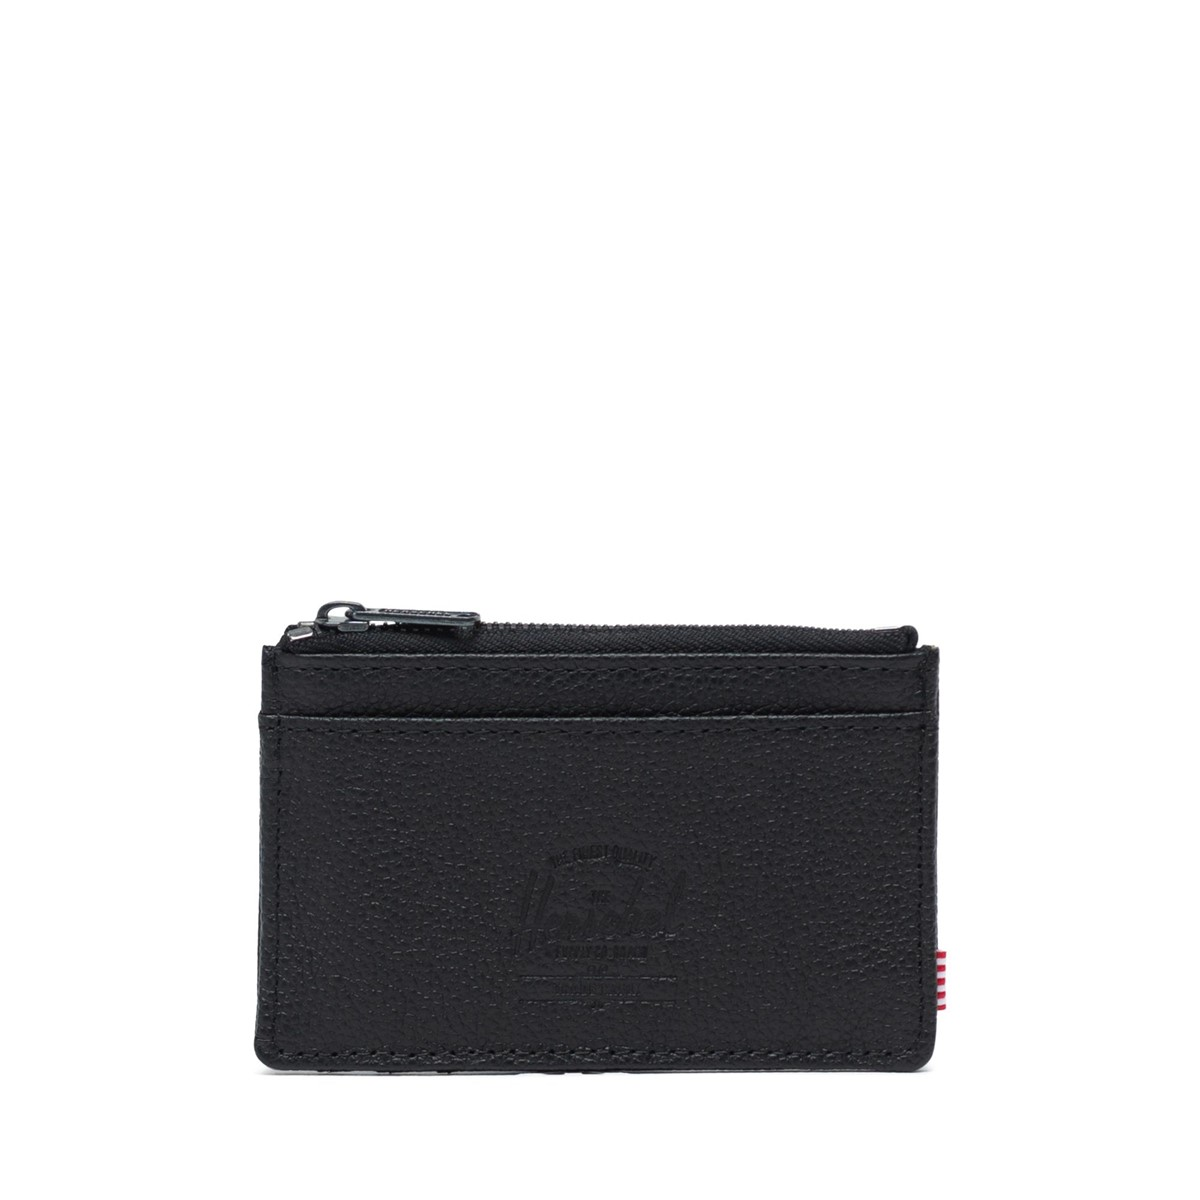 Oscar Leather Black Wallet